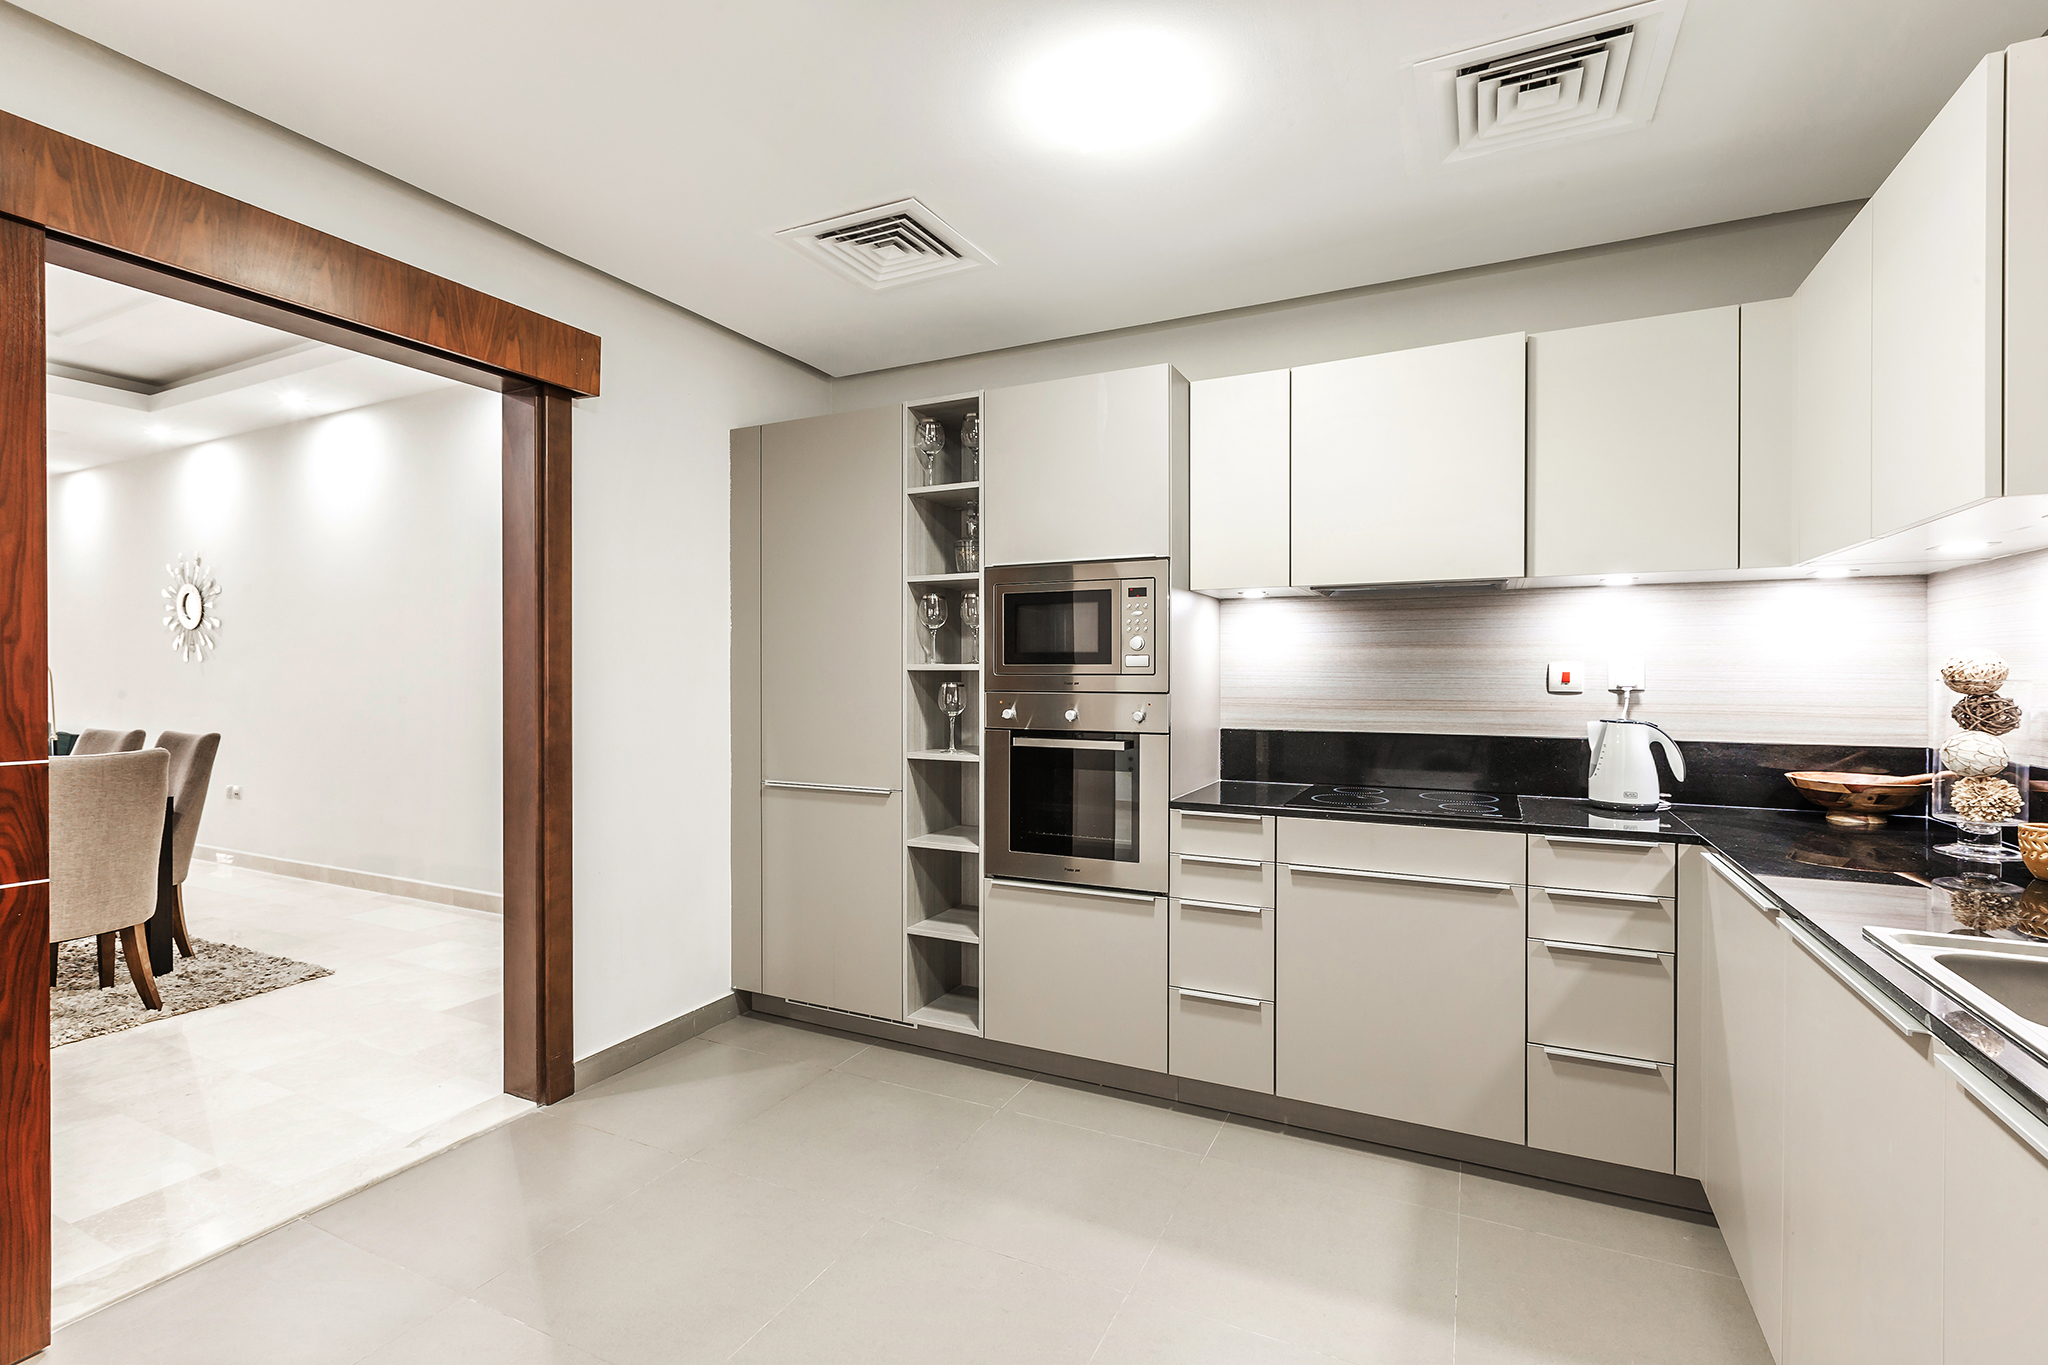 Modern, fully equipped kitchen area